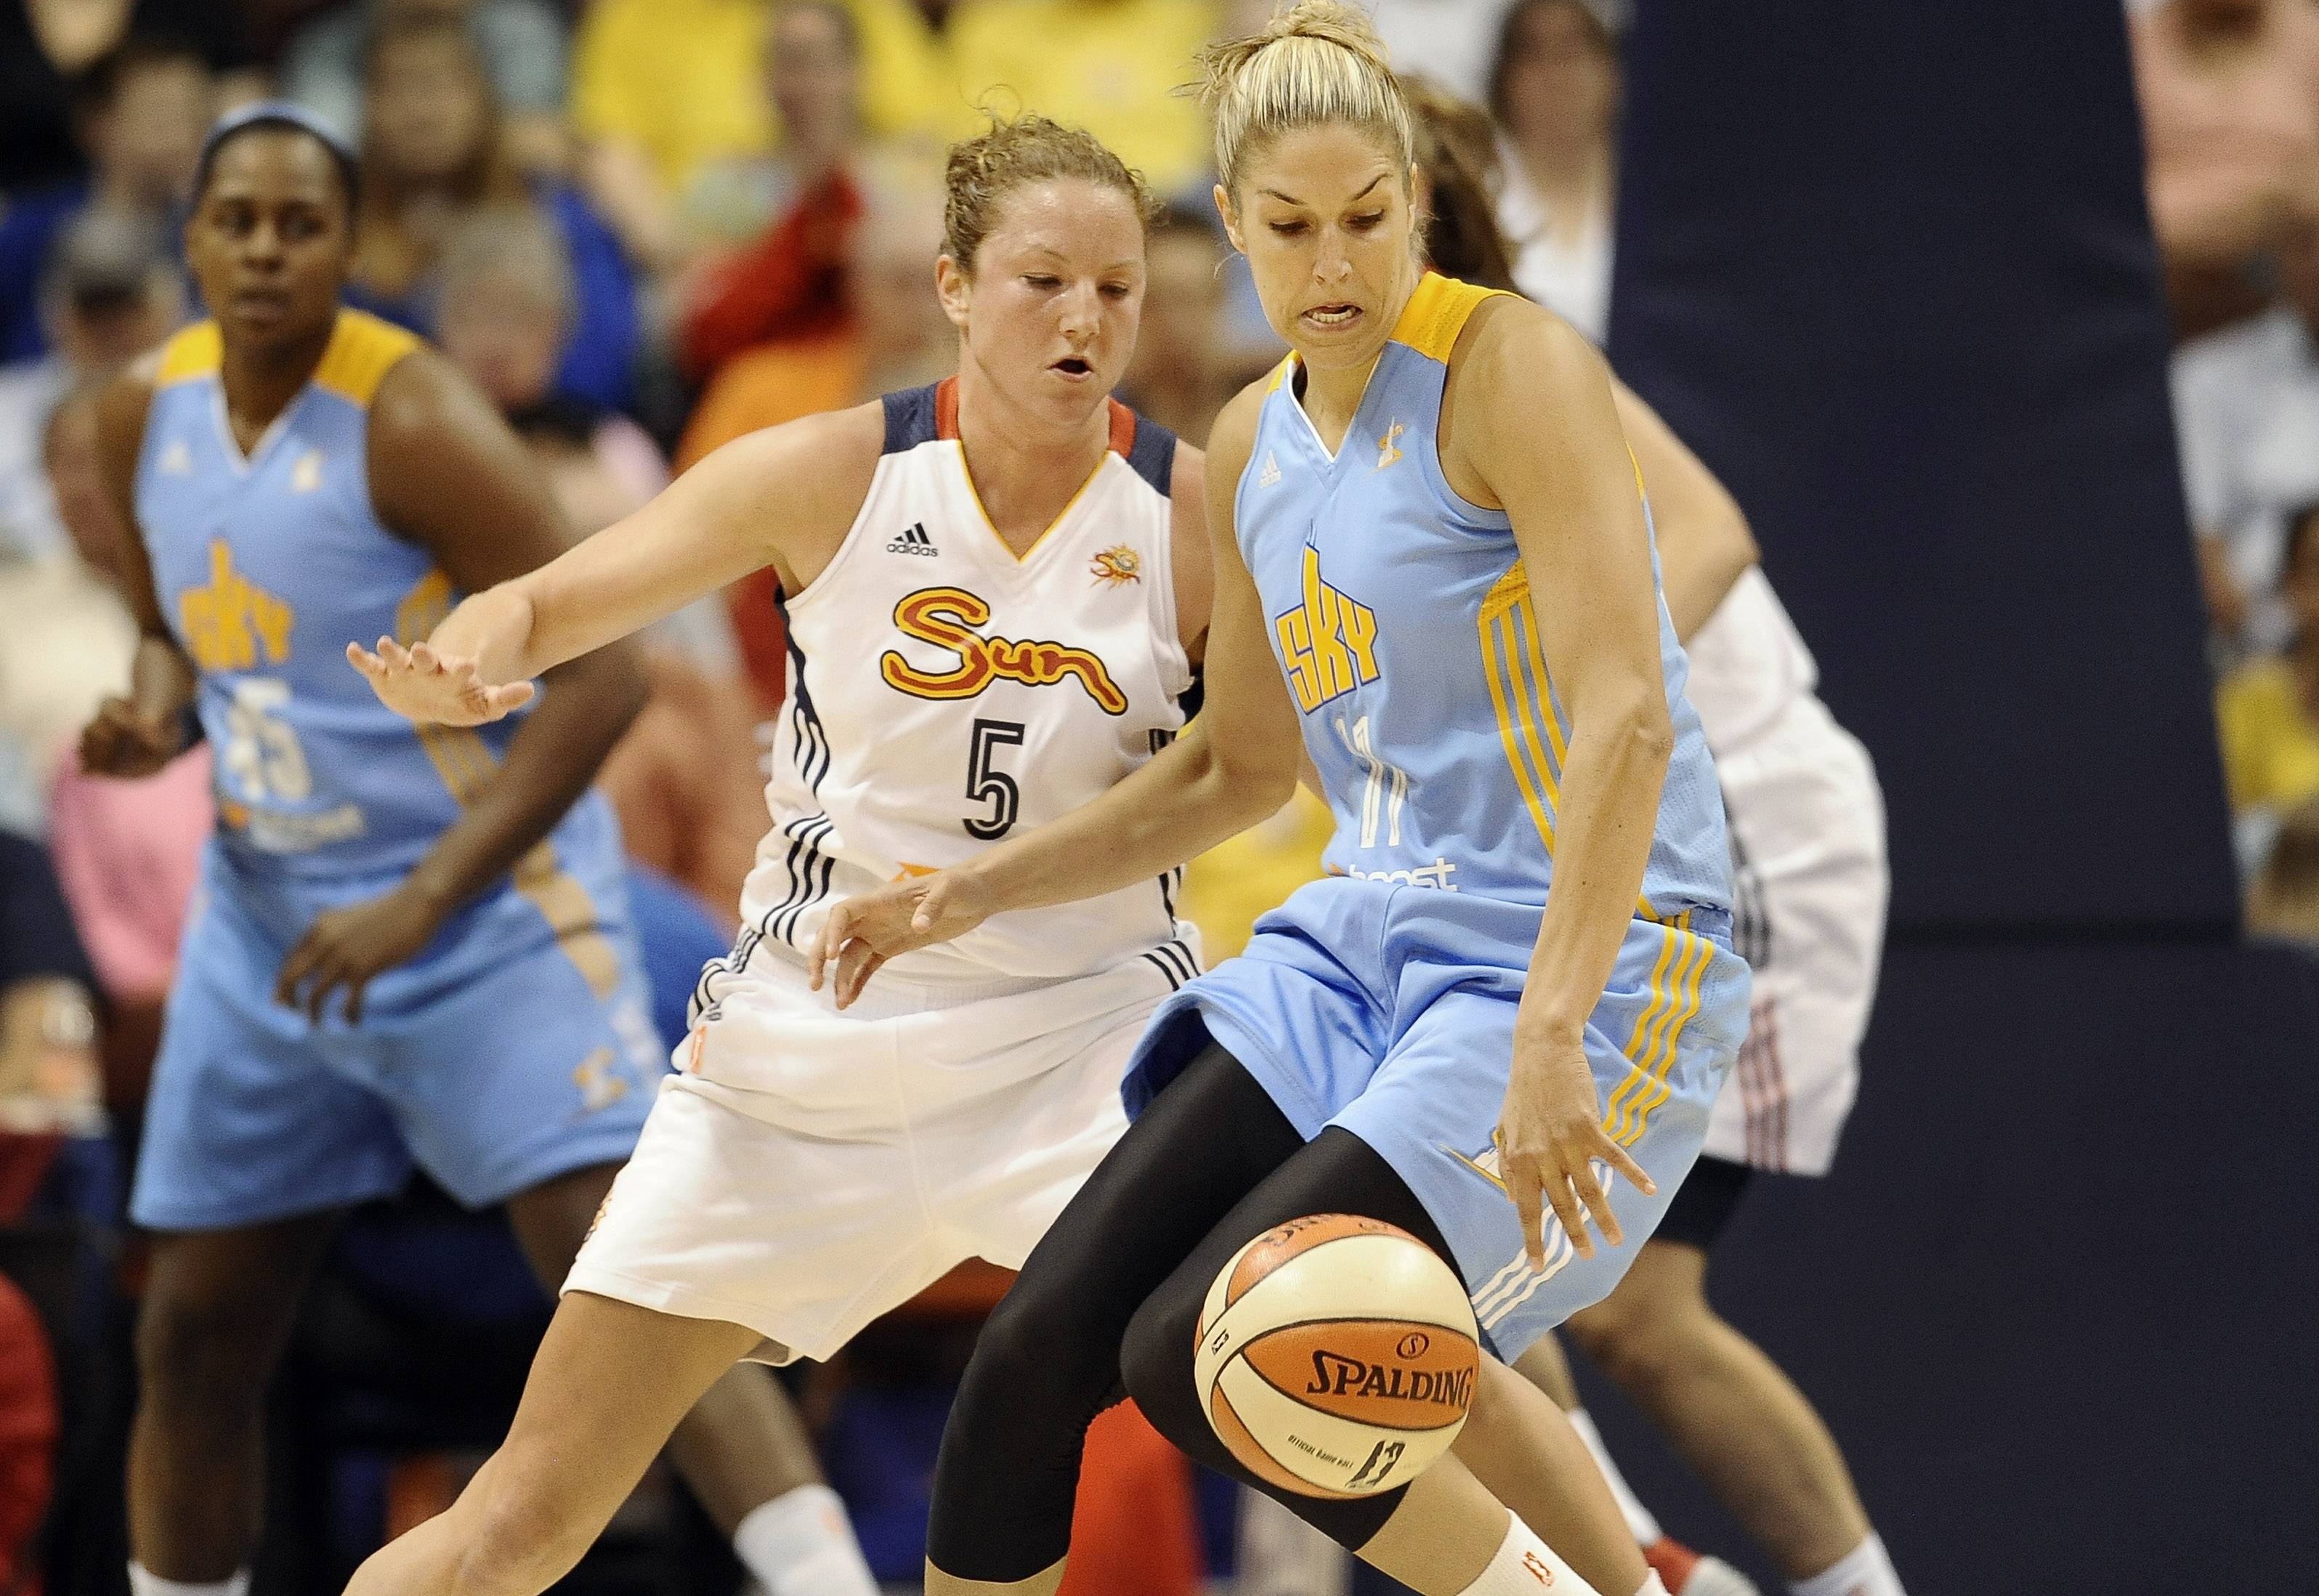 Chicago Sky's Elena Delle Donne, right, keeps the ball ahead of Connecticut Sun's Kelsey Griffin, left, during the first half of a WNBA basketball game, Wednesday, June 25, 2014, in Uncasville, Conn. (AP Photo/Jessica Hill)